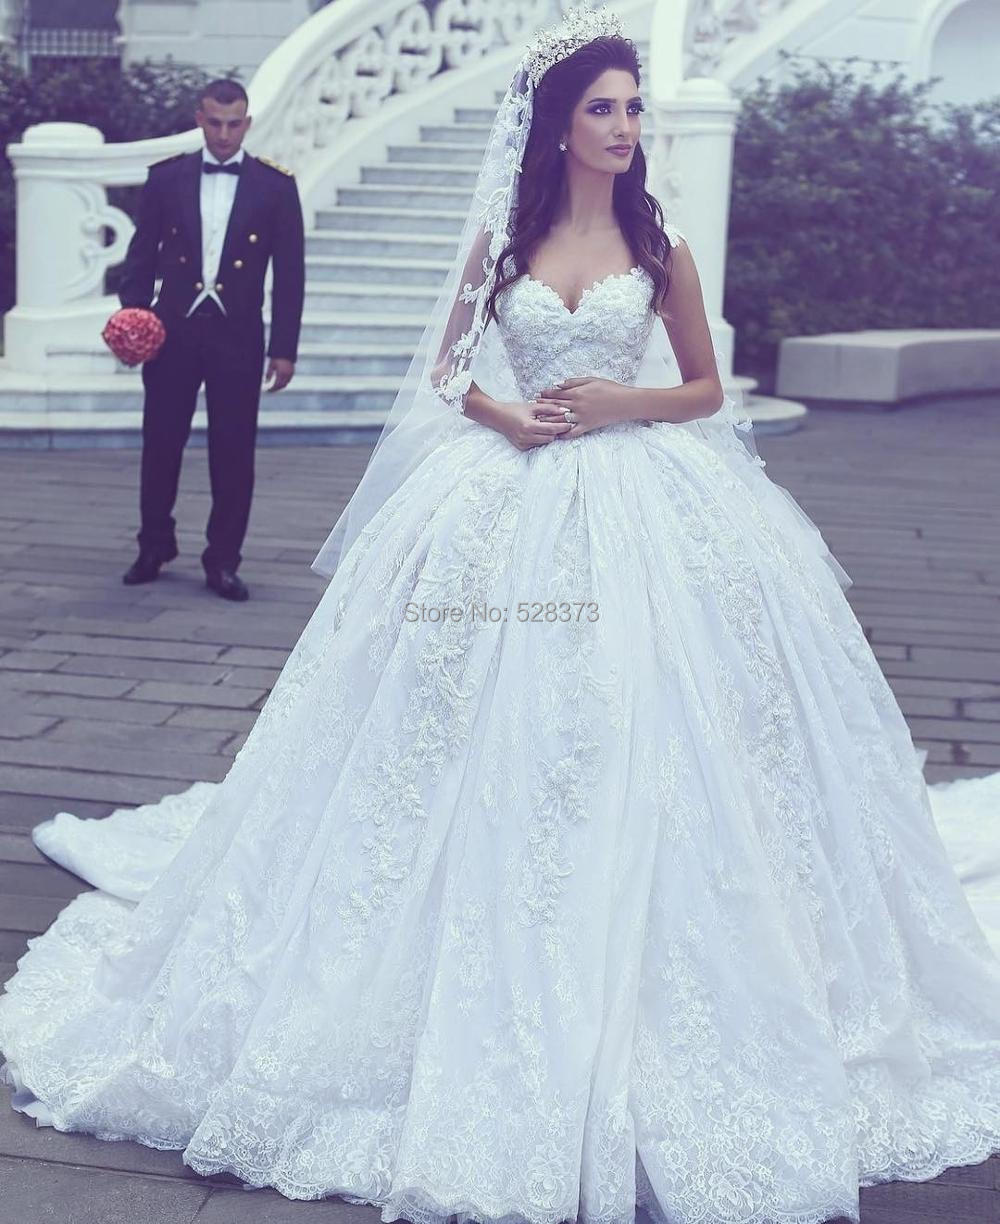 Ynqnfs Iwd4 Vintage Arabic Muslim Court Train Lace Bridal Dress Gown Princess Wedding Party 2019in Bridesmaid Dresses From Weddings Events On: Princess Wedding Dress Princess At Reisefeber.org